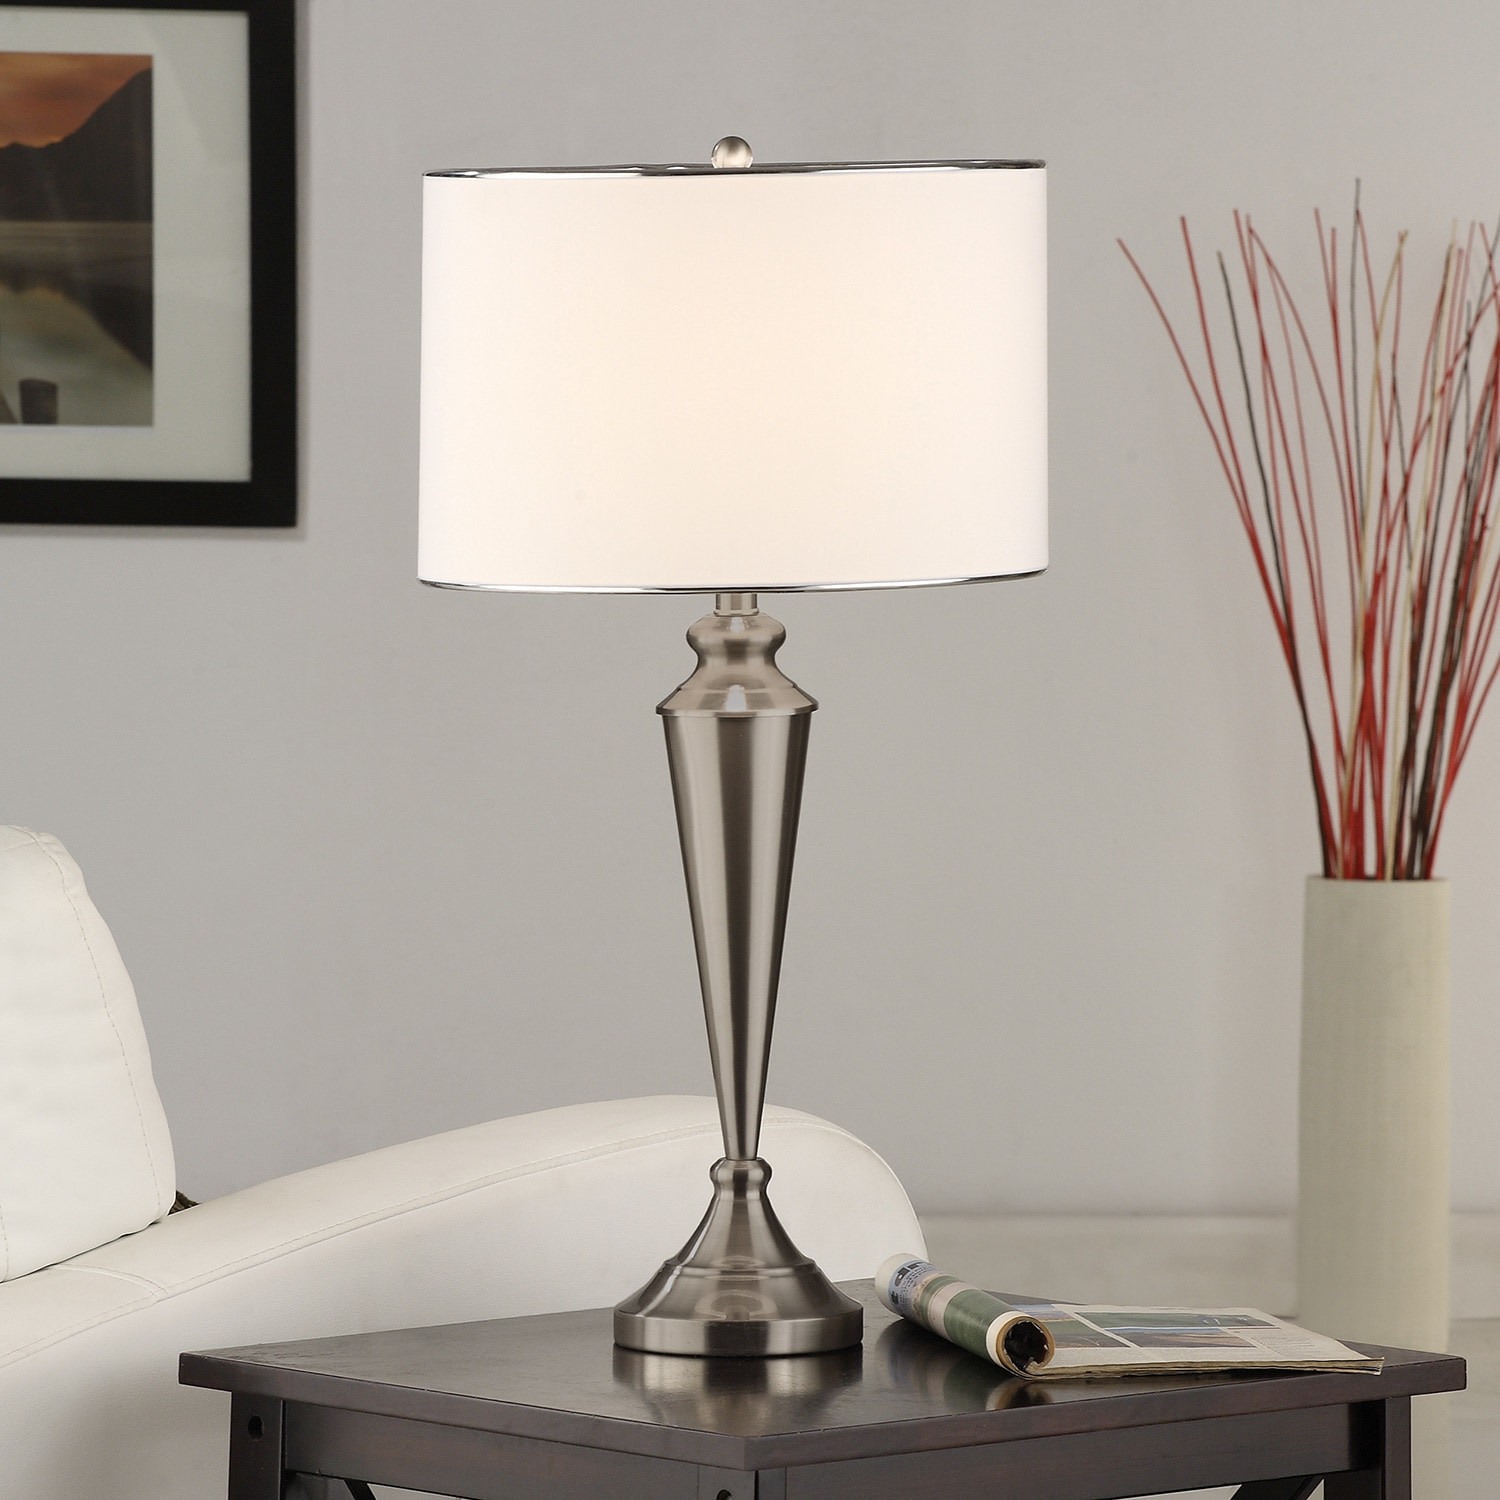 distributor lights lamp display colorful bedside lamps beads table item kuala crystal apple clearance red stock index